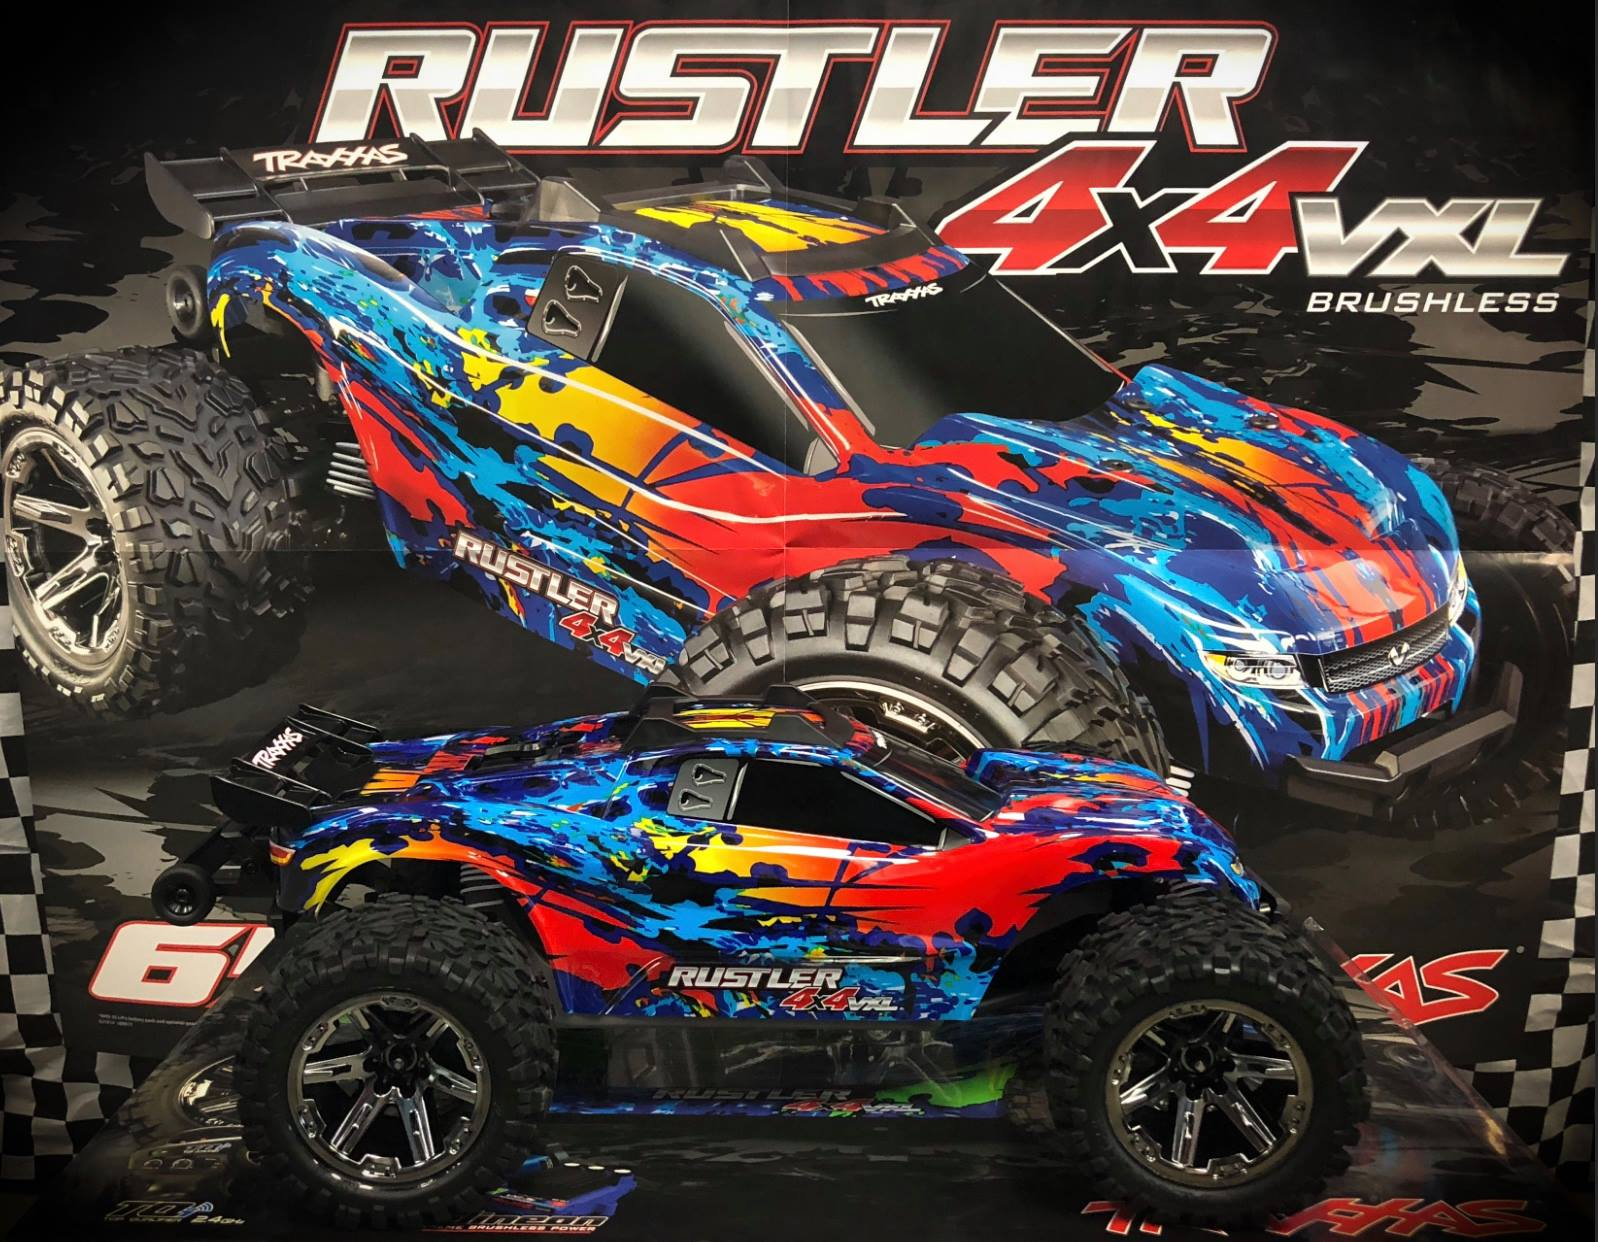 NEW RUSTLER 4X4 VXL DISPLAY IN STOCK!